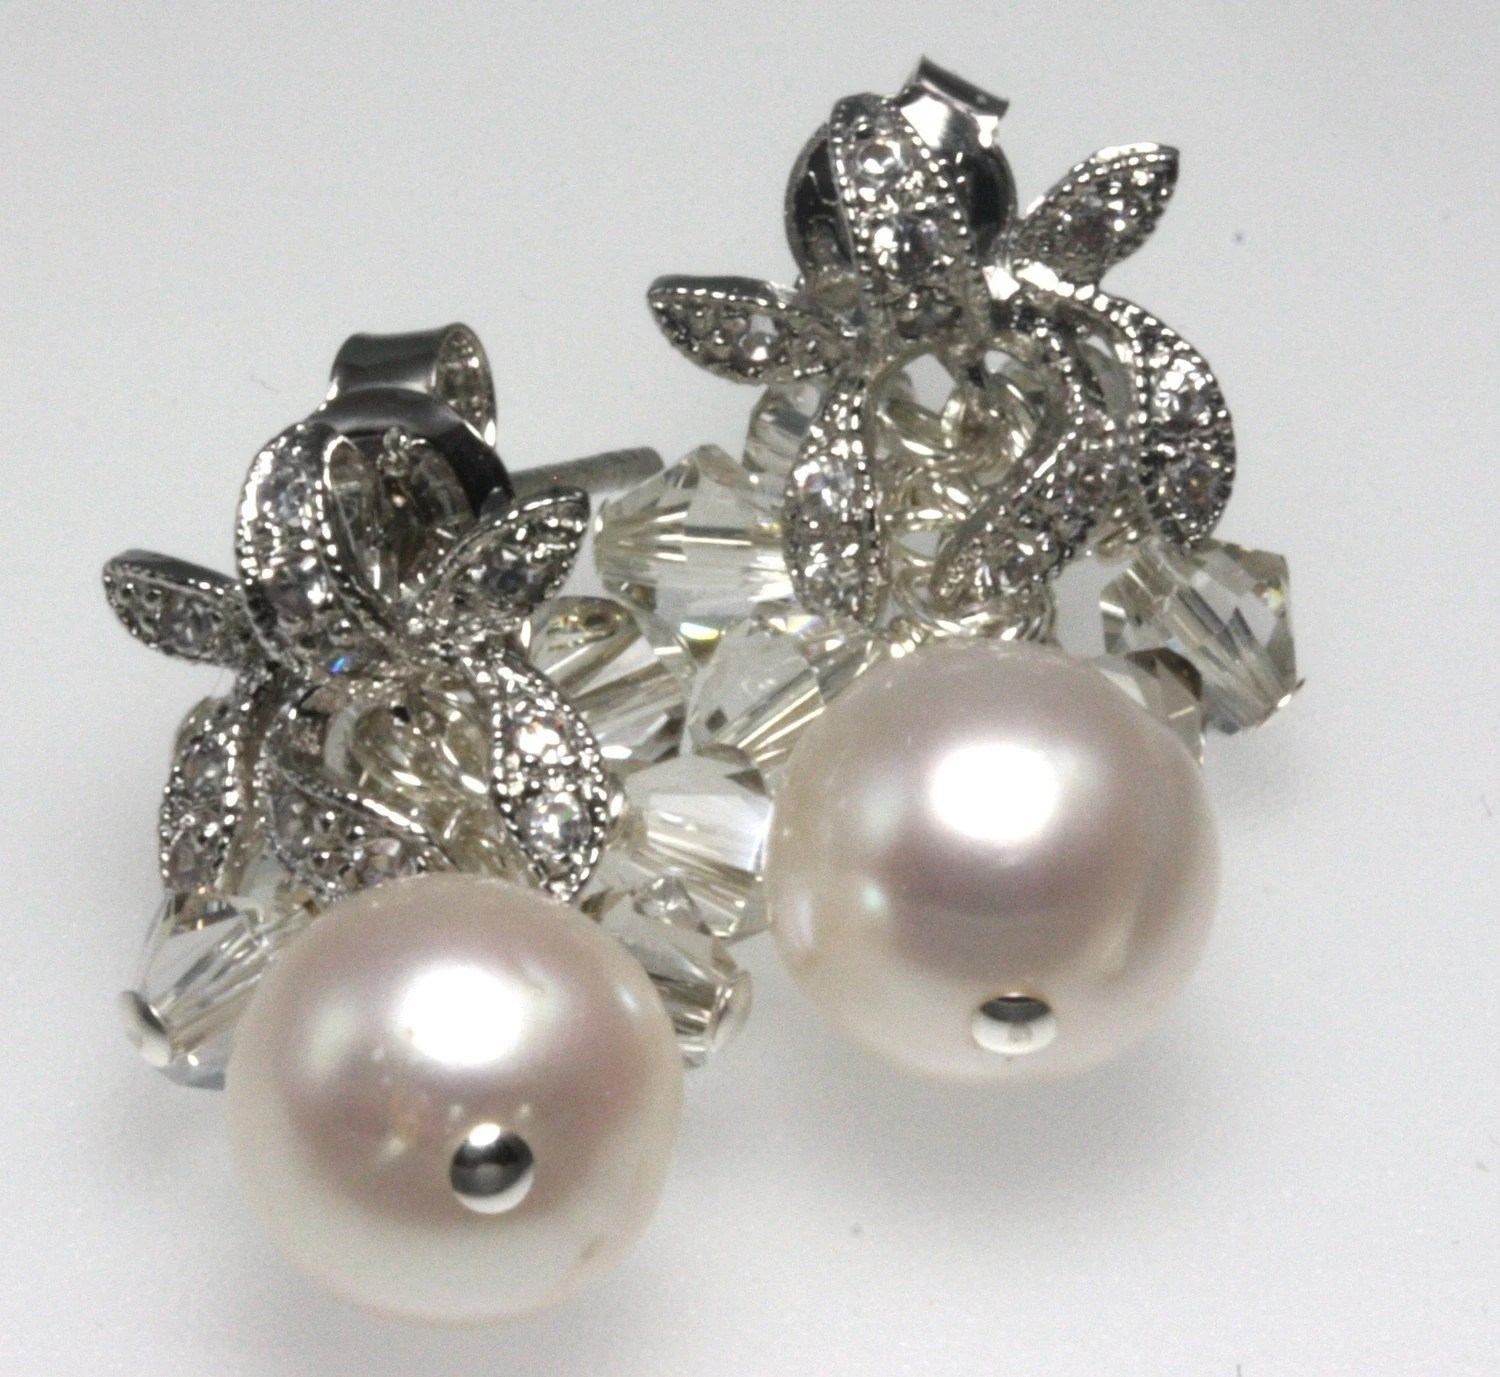 Amanda Earrings- Freshwater Pearls and Swarovski Crystals